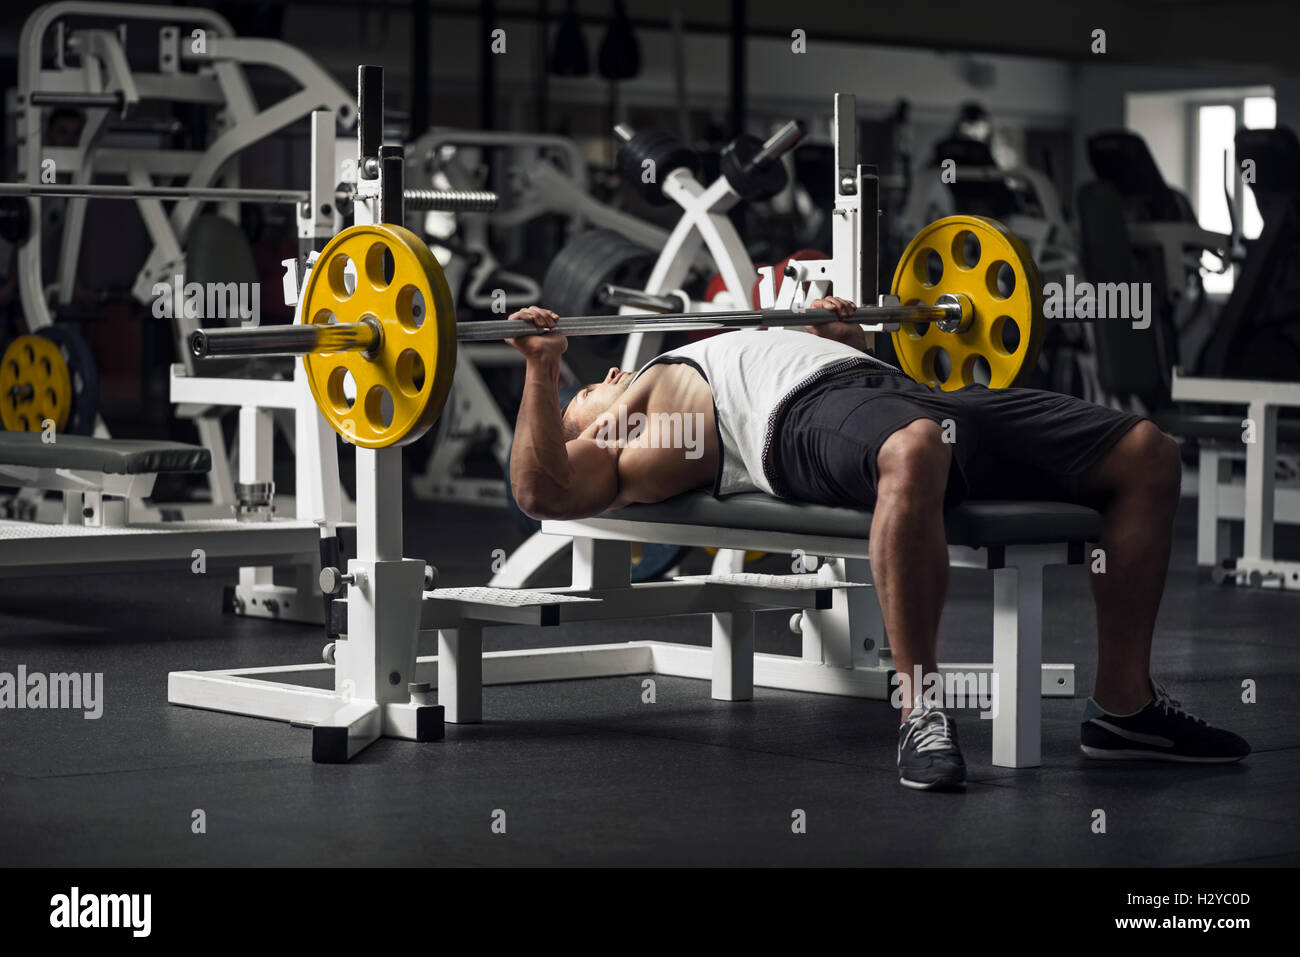 Strong athletic man preparing to lift a barbell - Stock Image